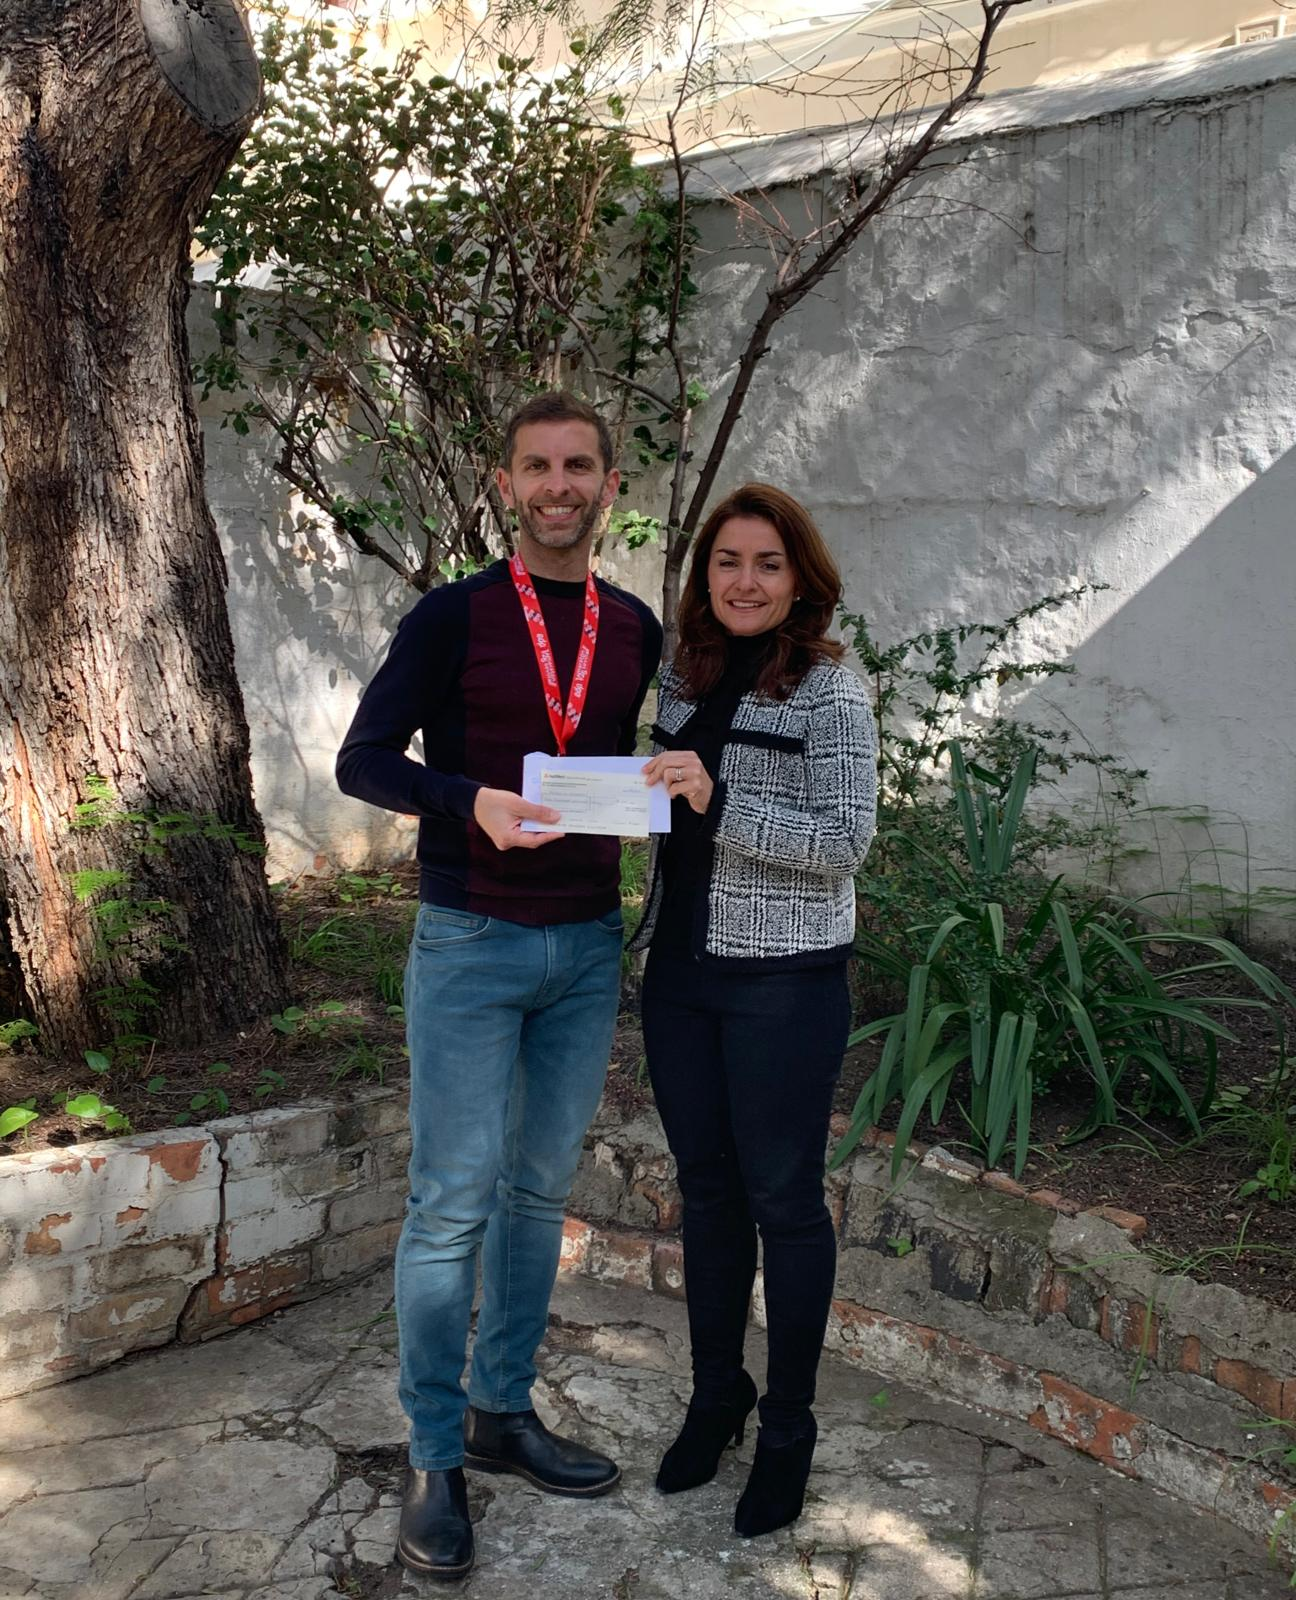 February 2020 - Ivan Ford took part in the Seville Half Marathon and raised £300 for our school projects, thank you Ivan !!